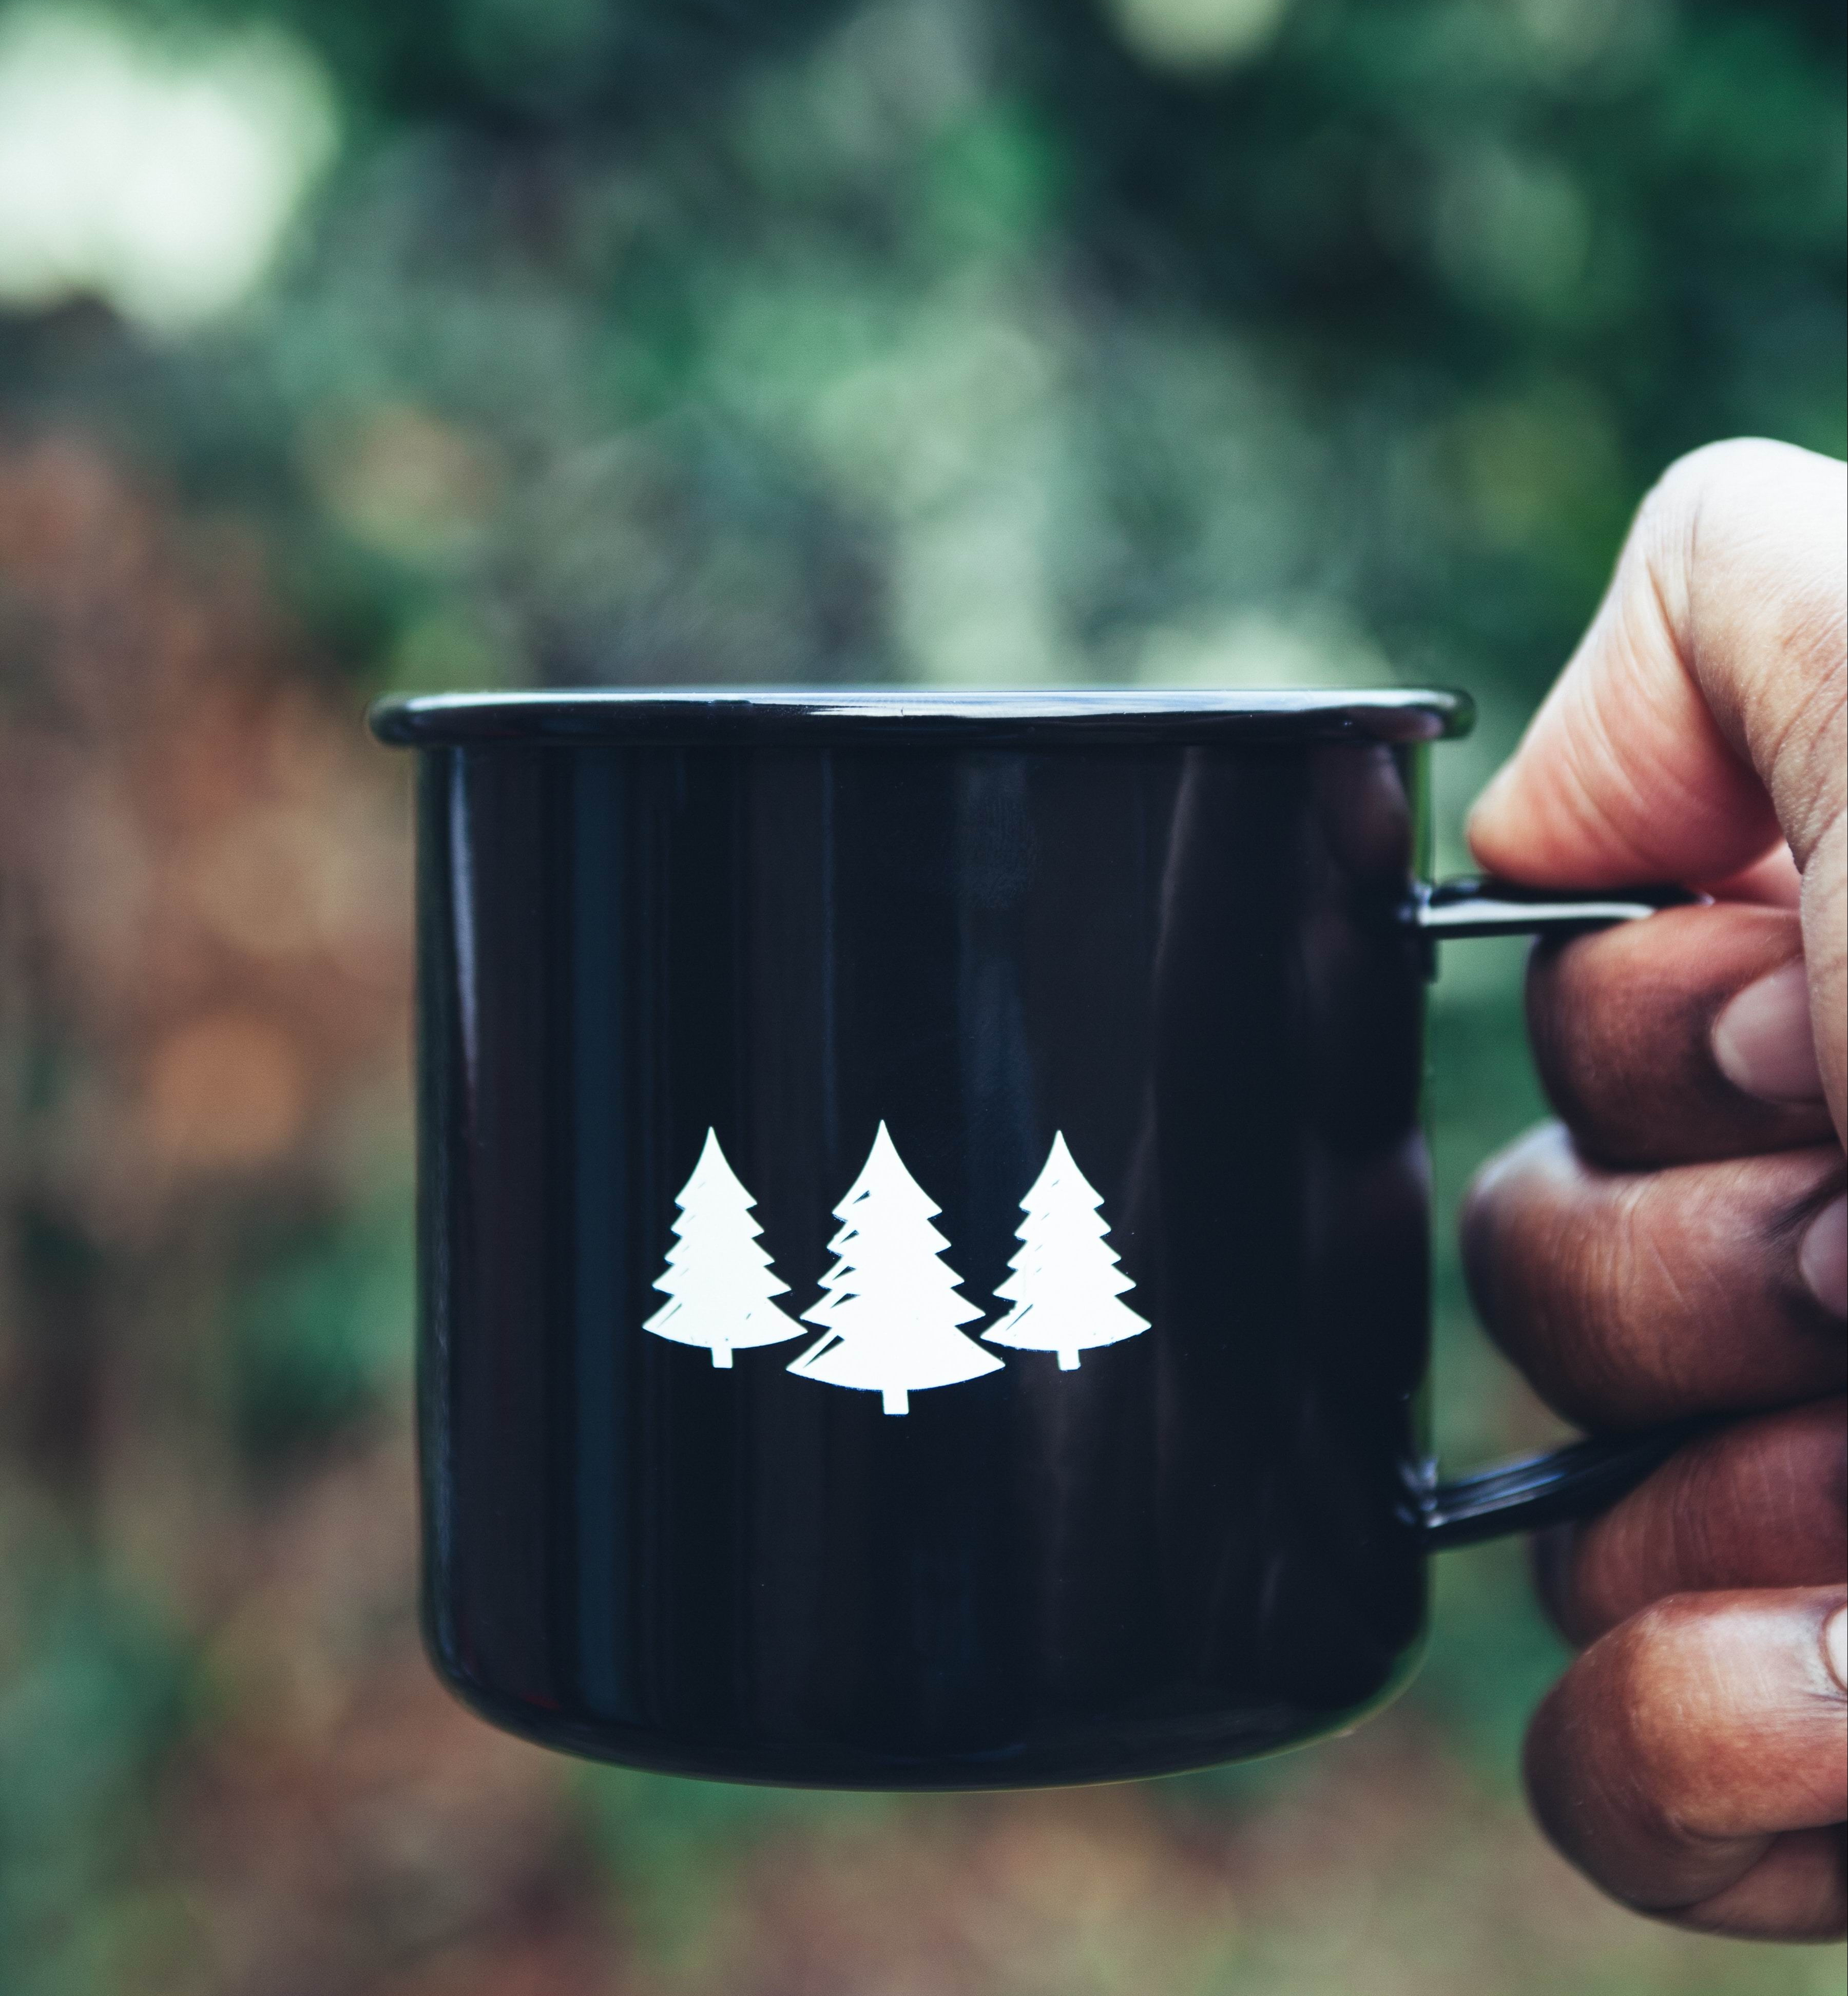 CUP W. CHRISTMAS TREES - Photo by Clem Onojeghuo on Unsplash